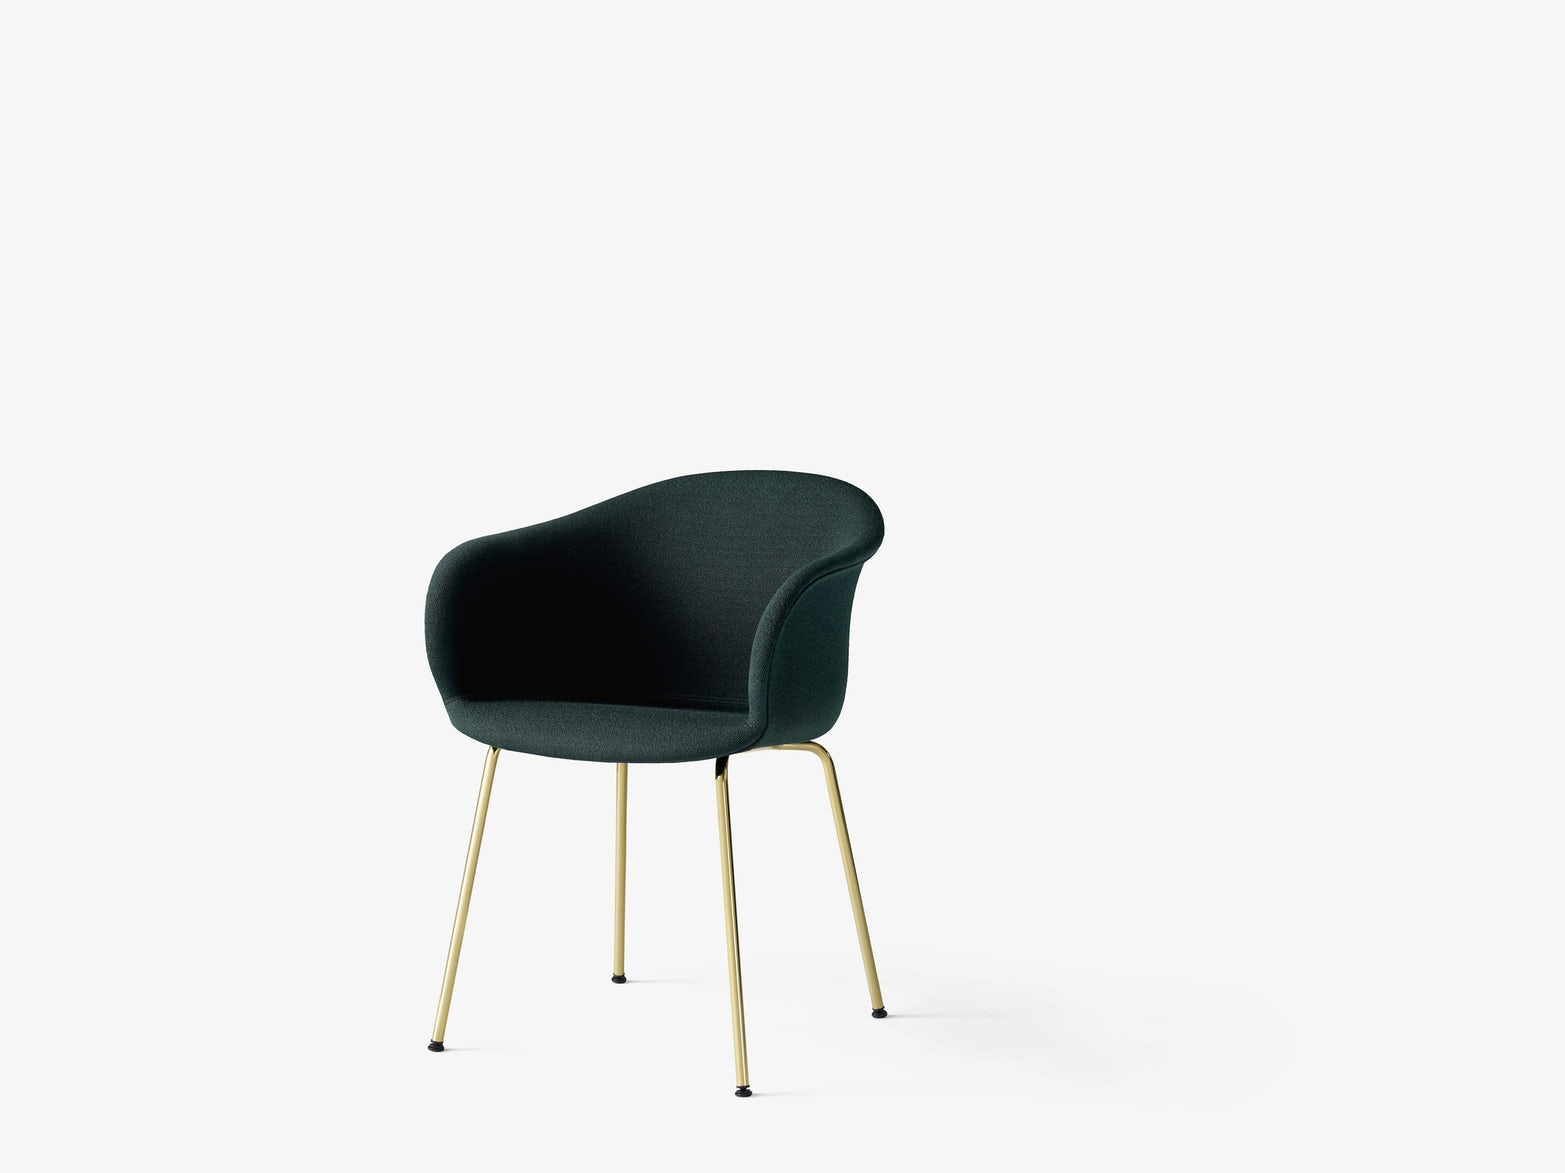 Elefy jh29 chair jaime hayon andtradition 4